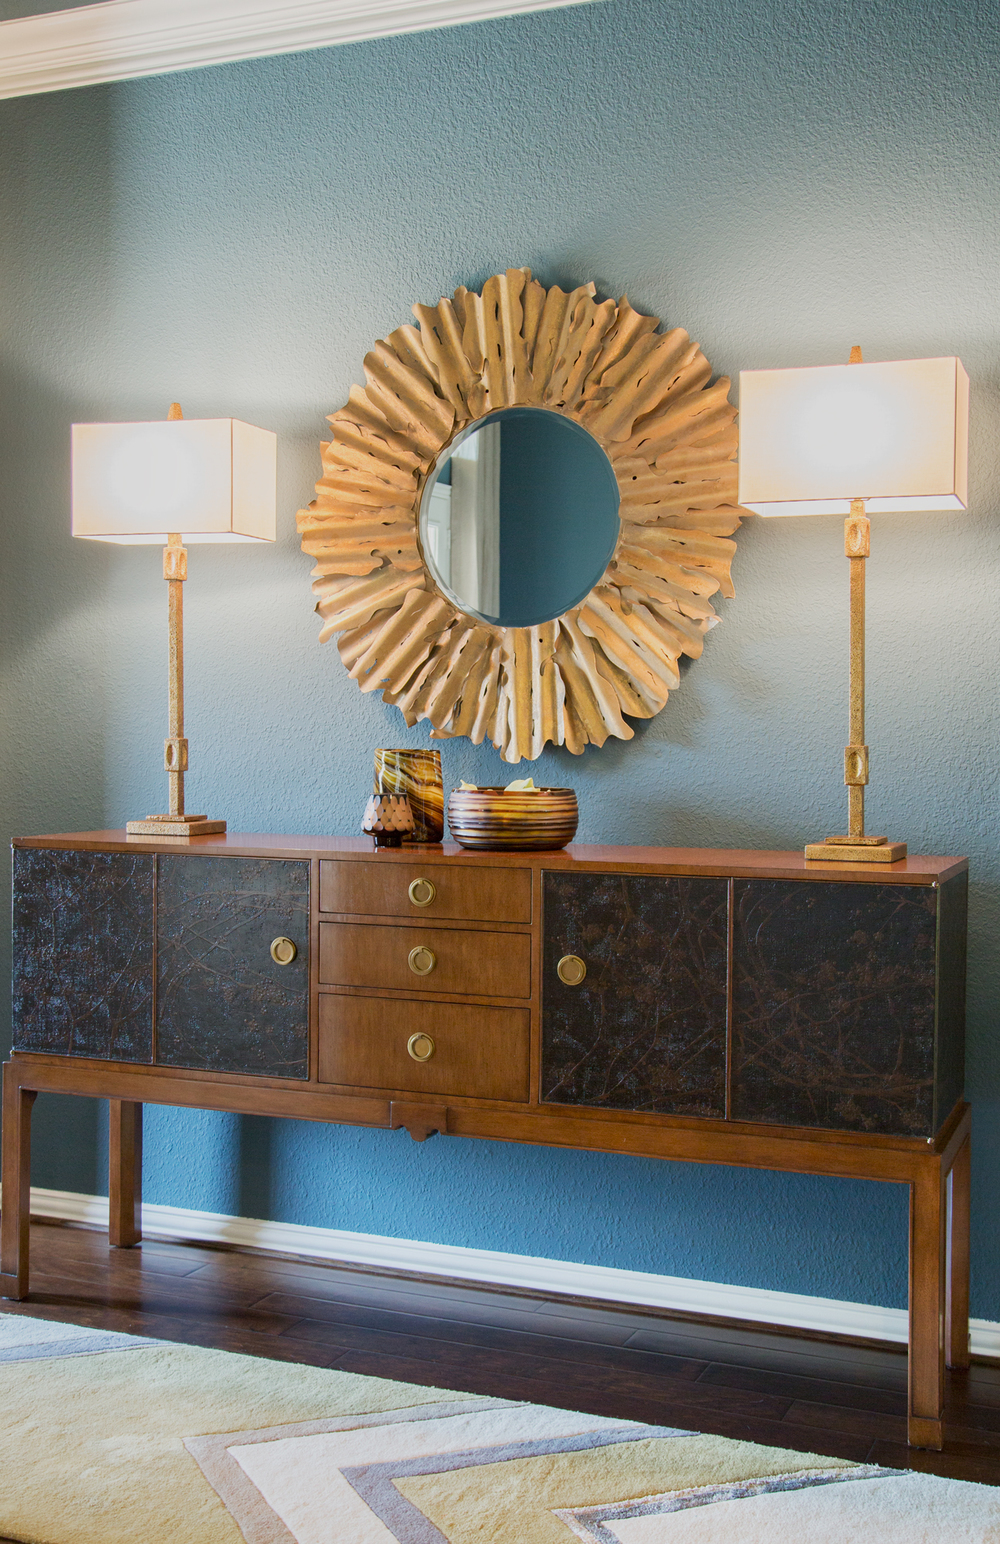 Entry hall remodel; lamp; mirror; rug; decor | Interior Designer: Carla Aston / Photographer: Tori Aston